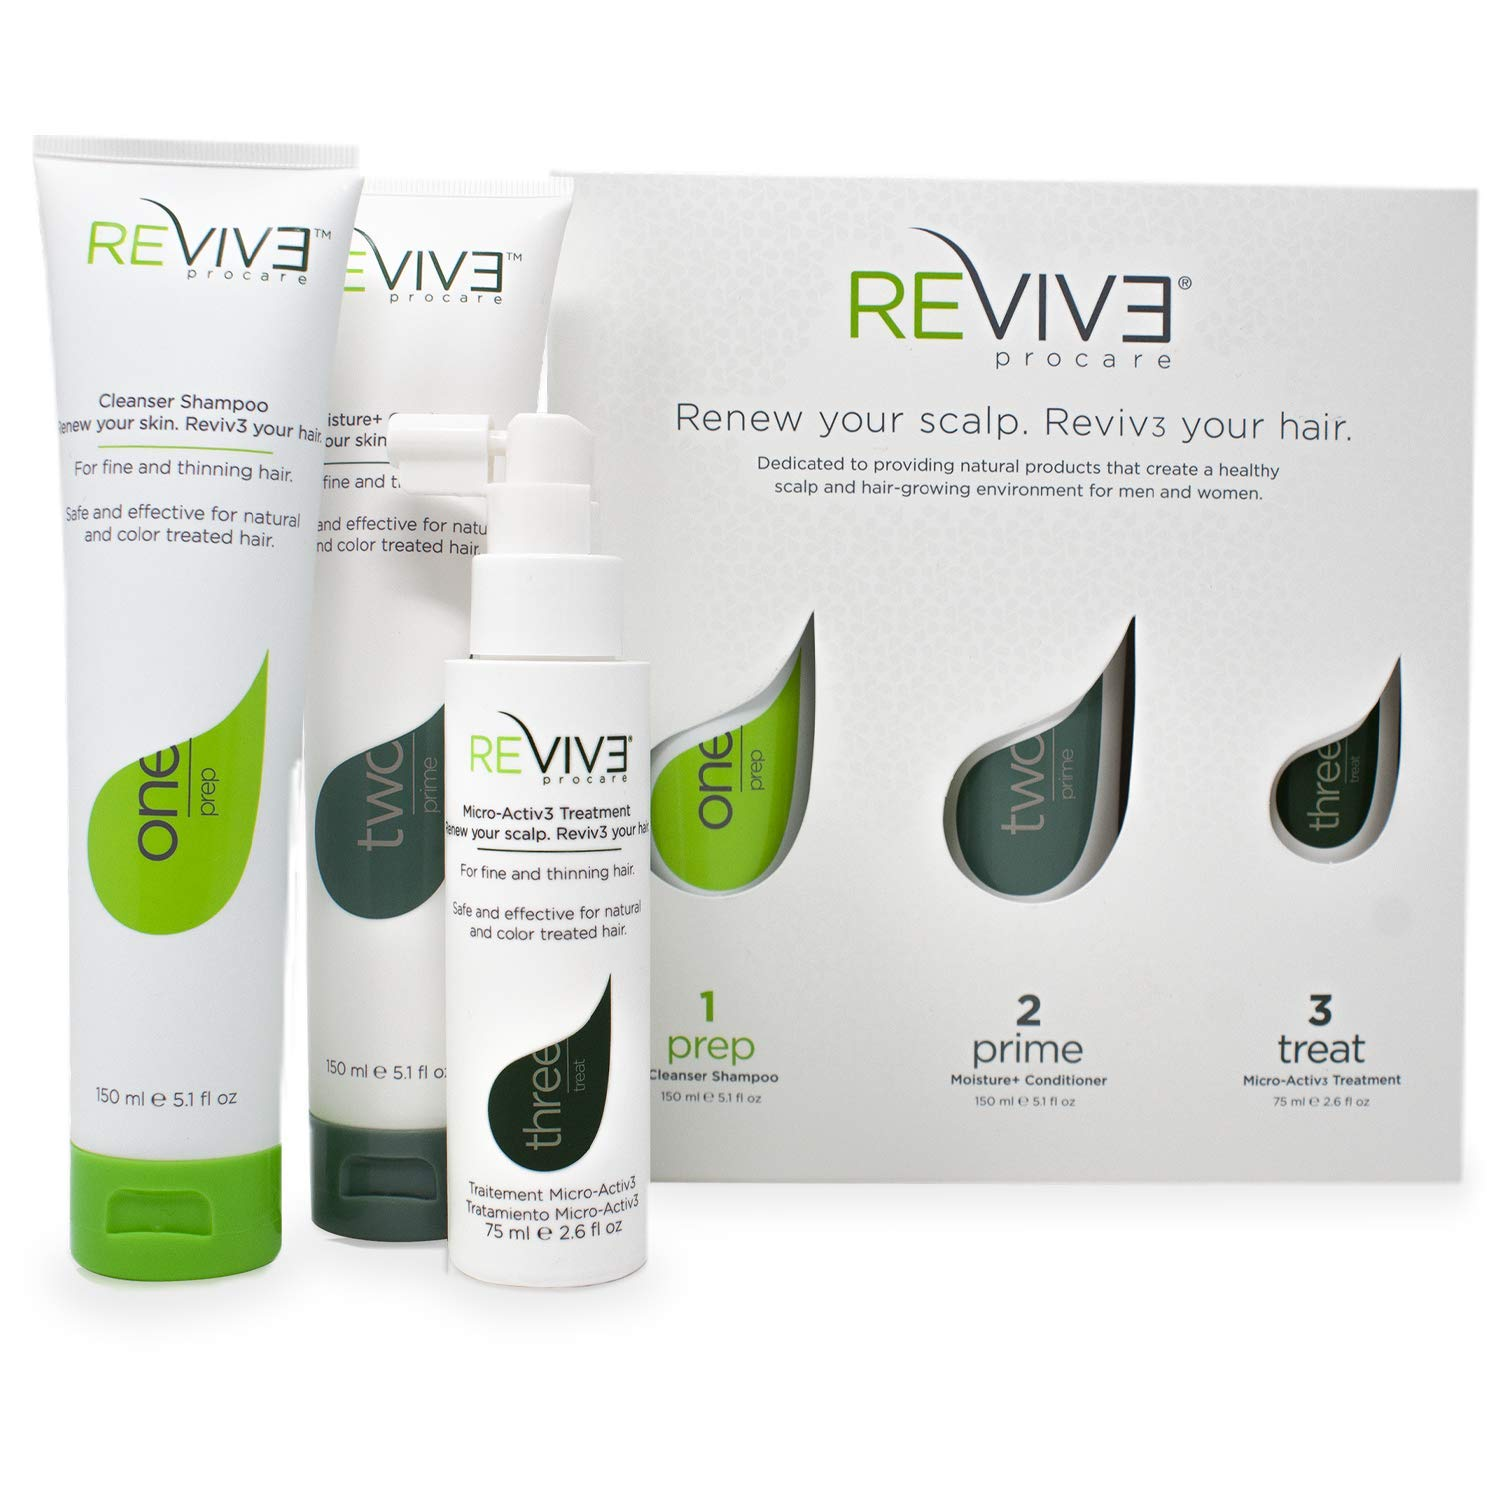 REVIV3 Procare 30 Day Trial Kit - 3-Part System for Fine and Thinning Hair - Sulfate and Paraben Free - Leave-In Hair Treatment Shampoo and Conditioner - Thinning Hair Treatment for Men and Women by REVIV3 ProCare